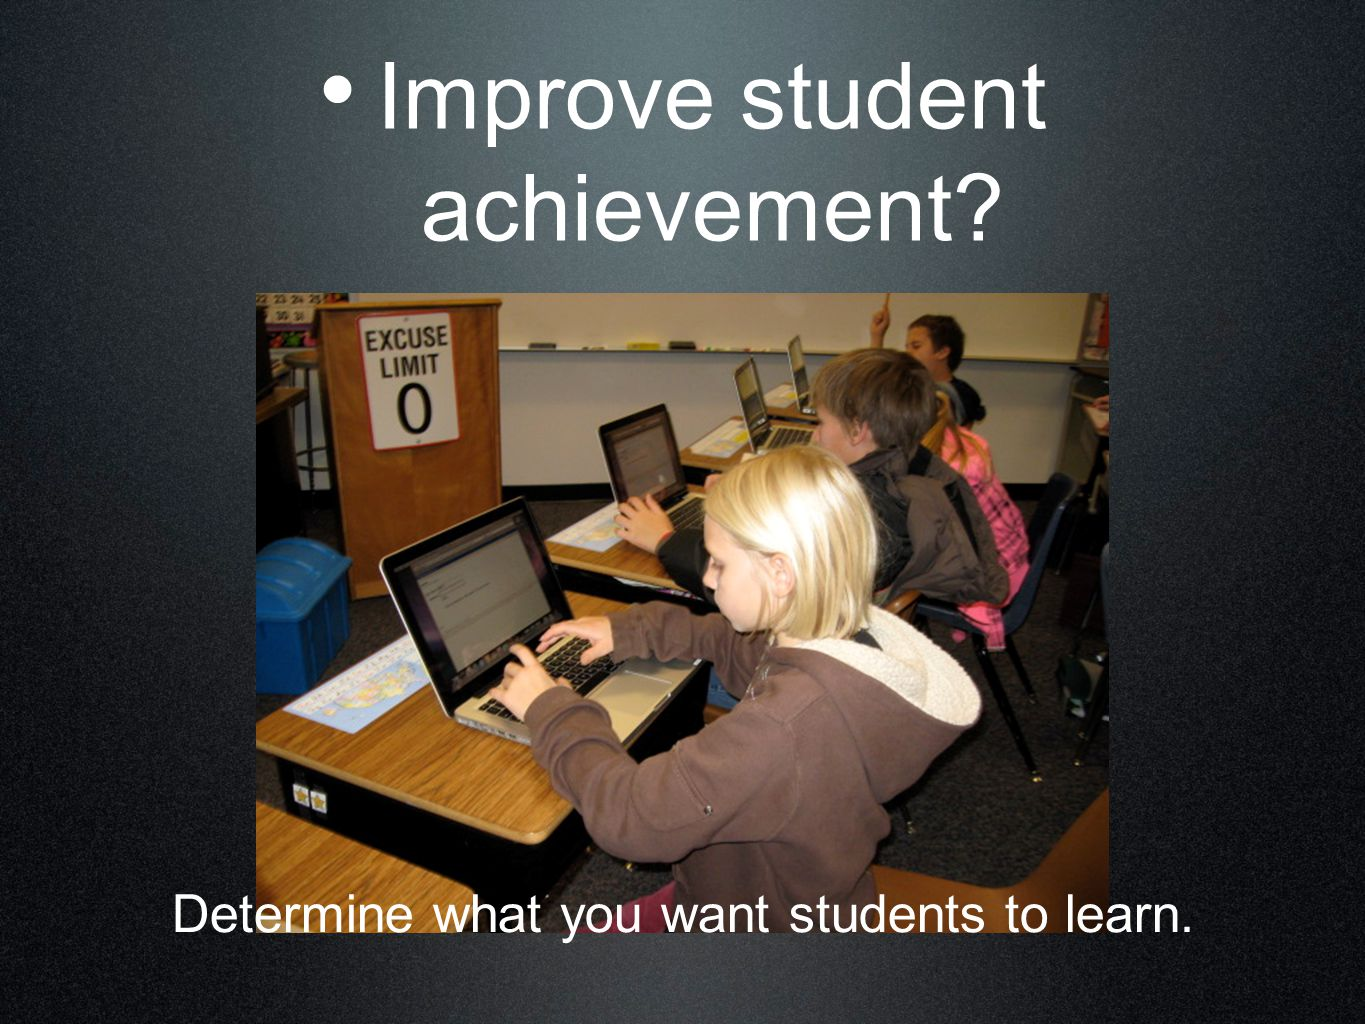 Improve student achievement? Determine what you want students to learn.